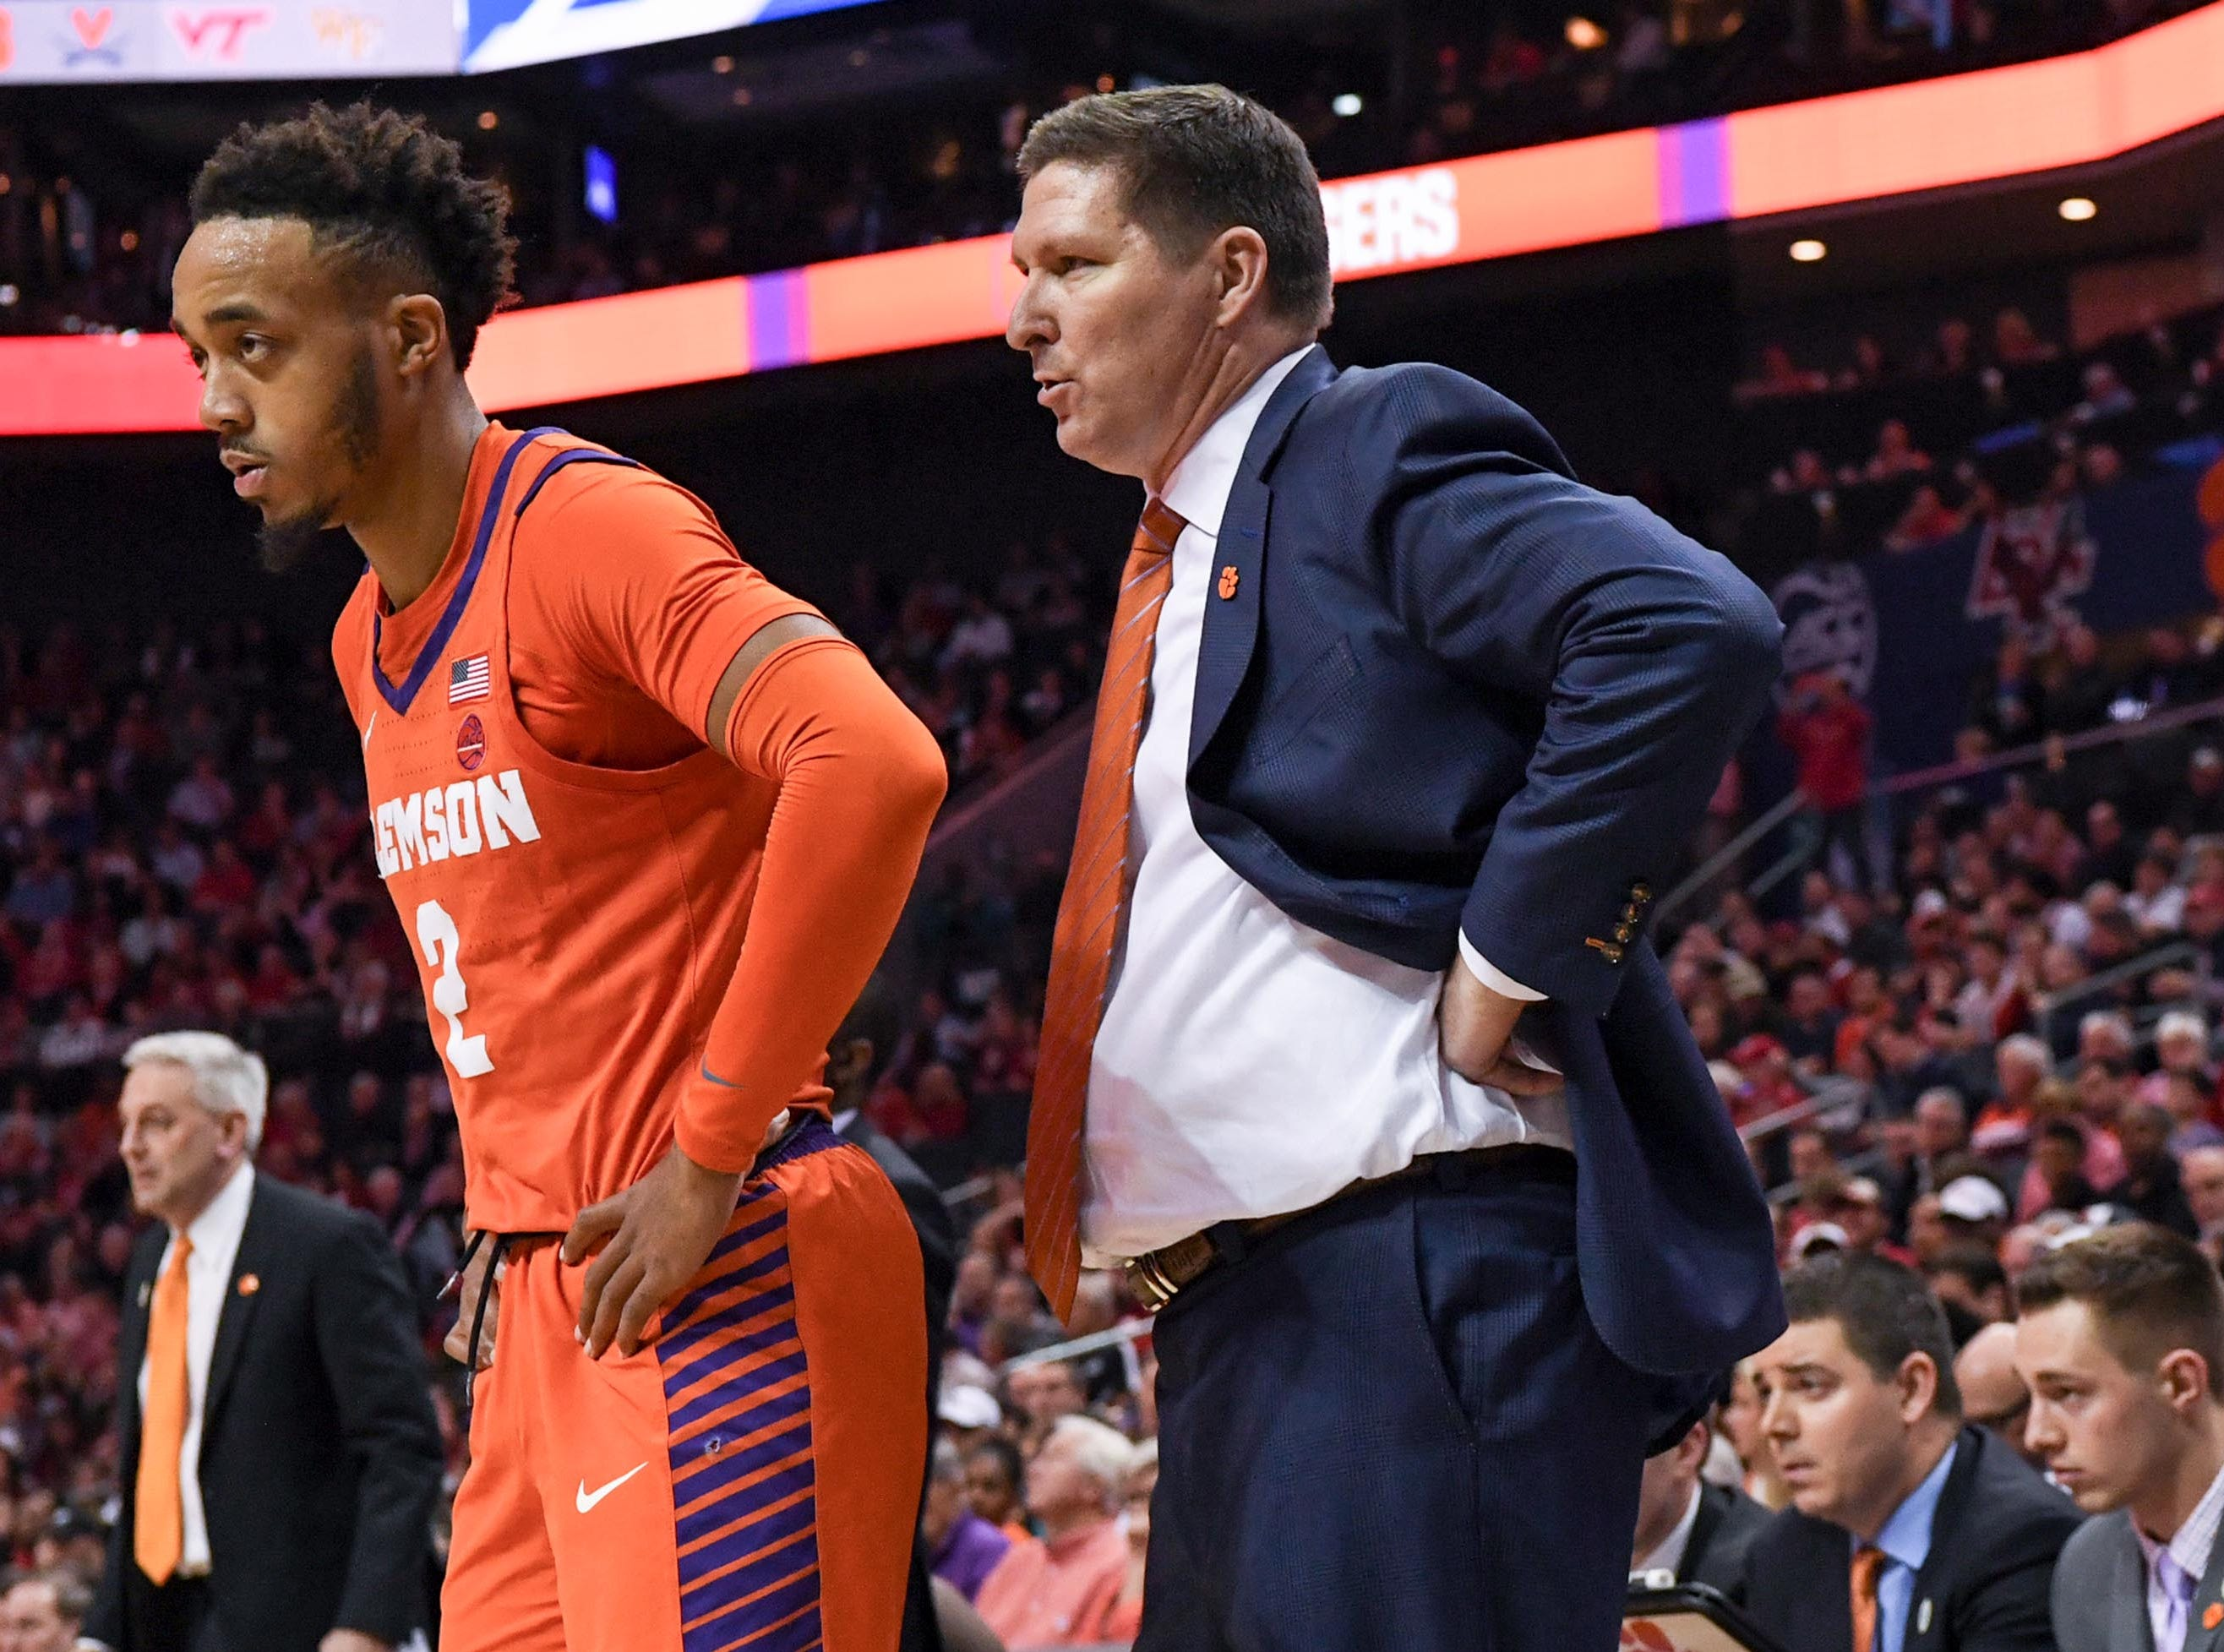 Clemson guard Marcquise Reed (2) and Clemson head coach Brad Brownell  watch during the second half at the Spectrum Center in Charlotte, N.C. Tuesday, March 12, 2019.